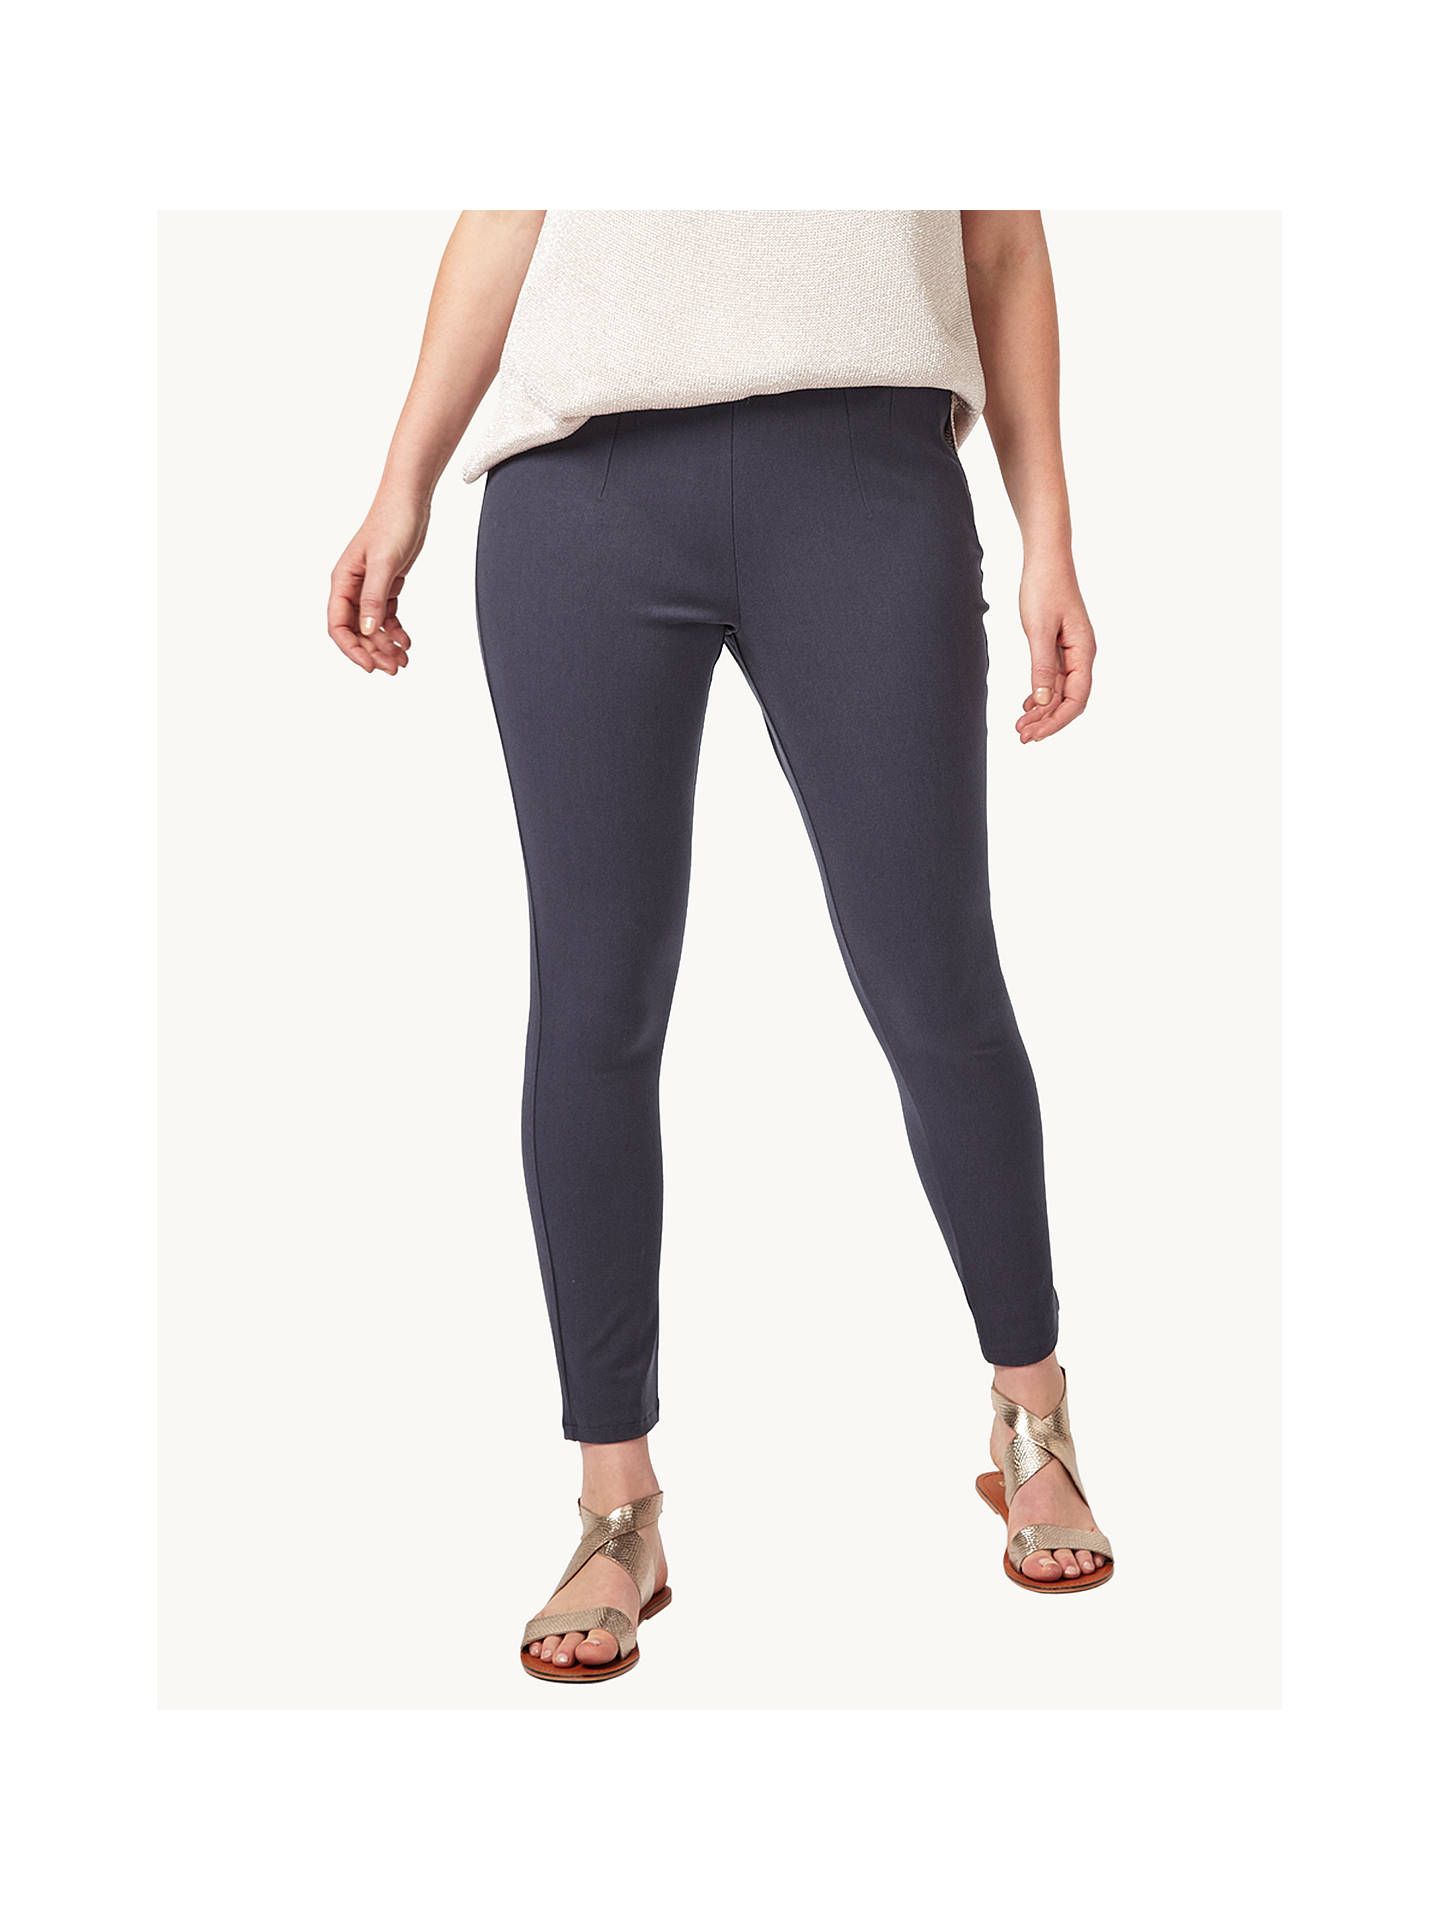 BuyStudio 8 Effie Trousers, Charcoal, 12 Online at johnlewis.com